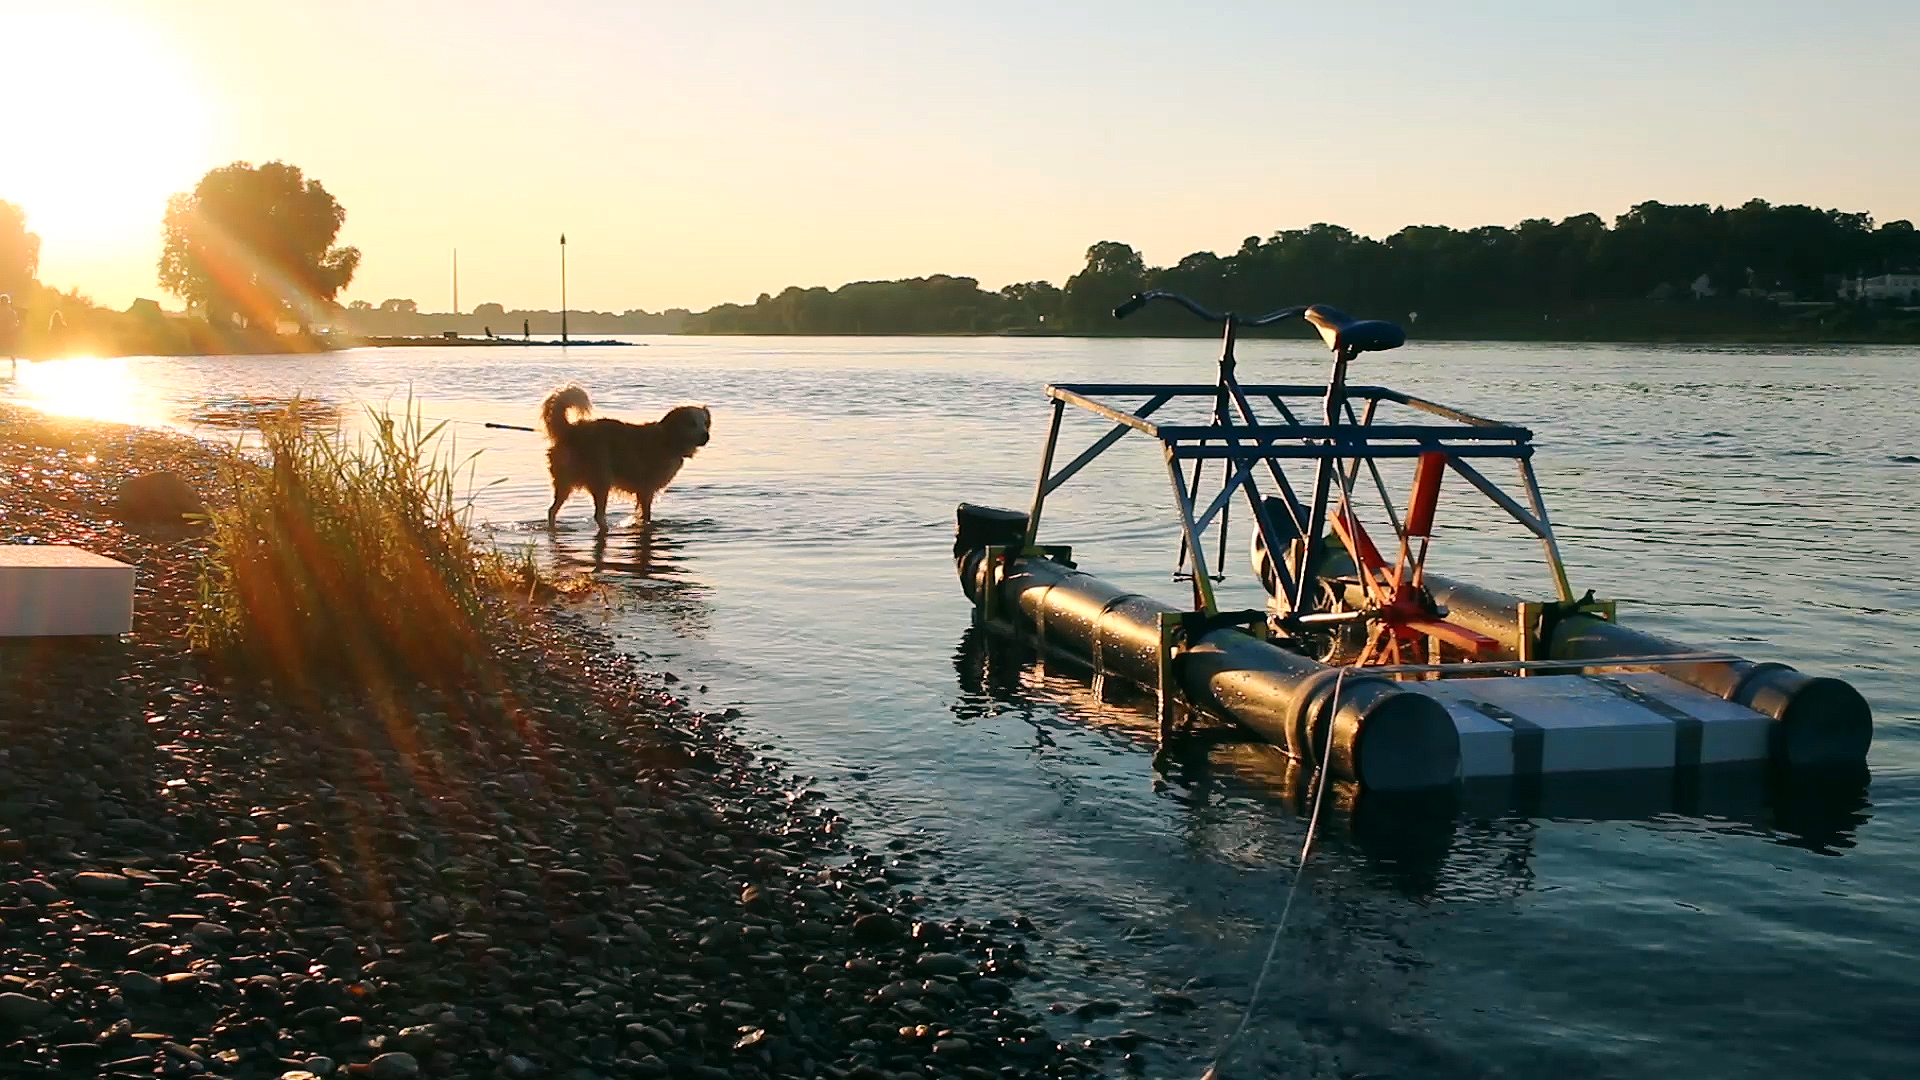 Laura Kampf Builds a Bike You Can Ride on Water